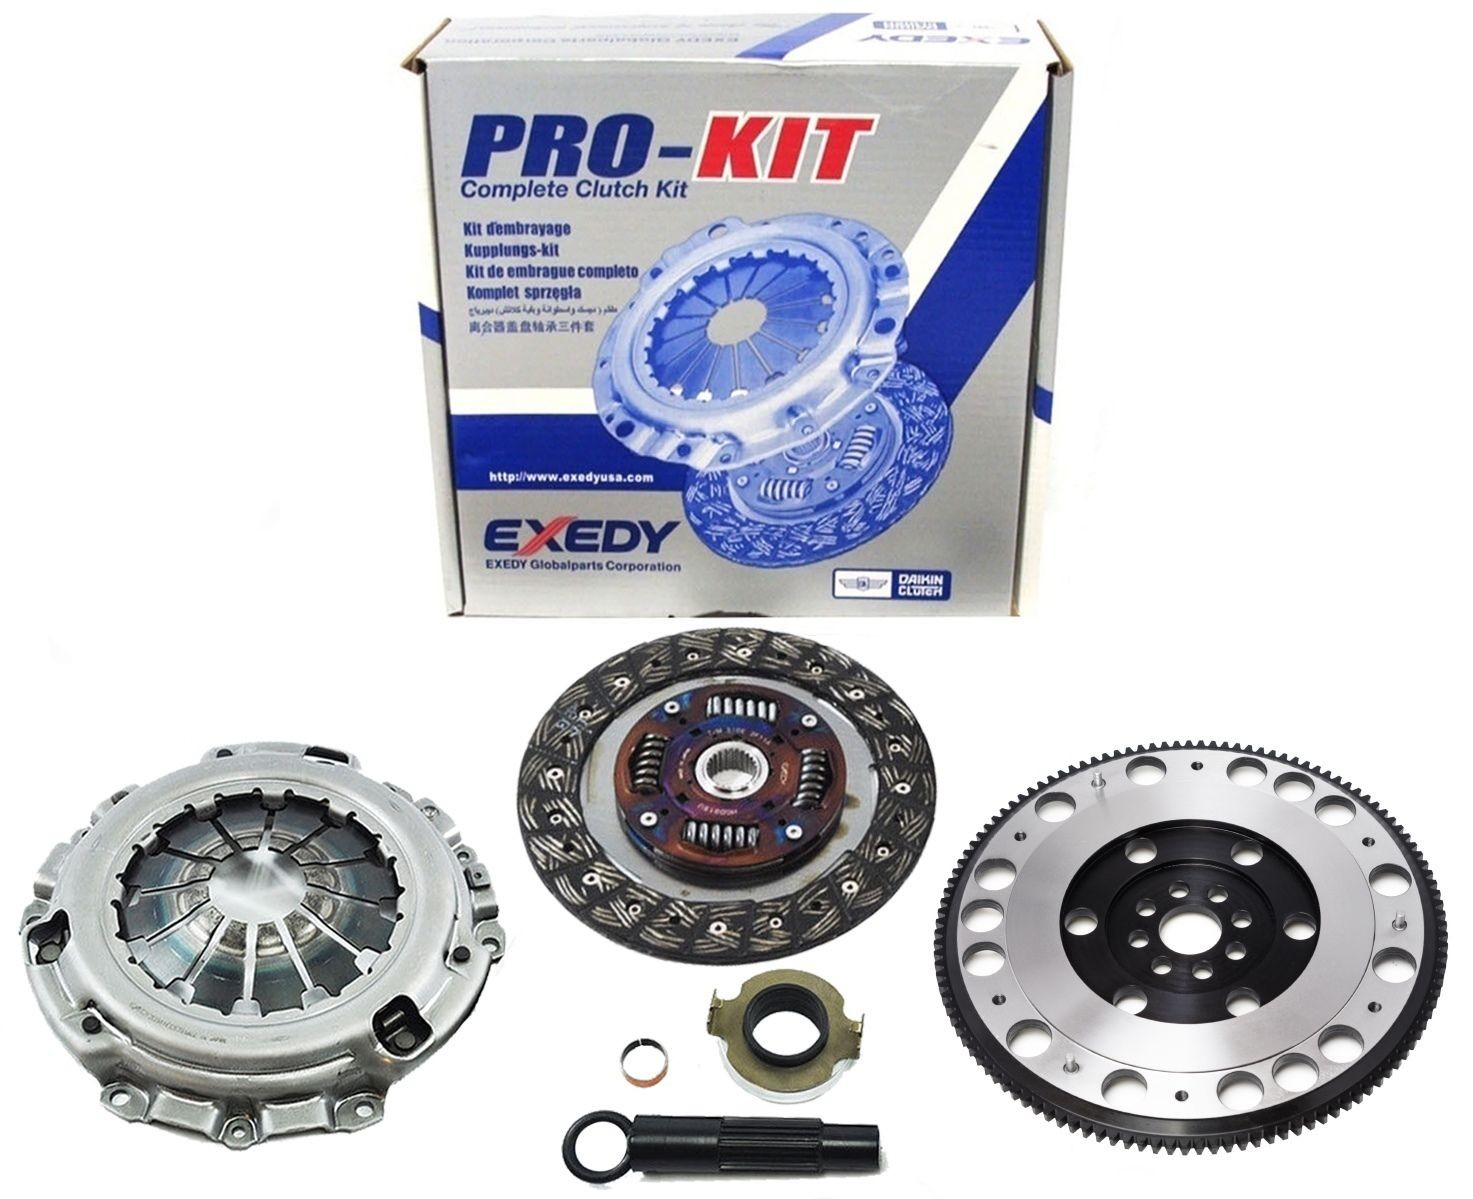 Honda Accord Flywheel Exedy Clutch Pro Kit Racing Chromoly Civic Si K20 6 Speed 20l